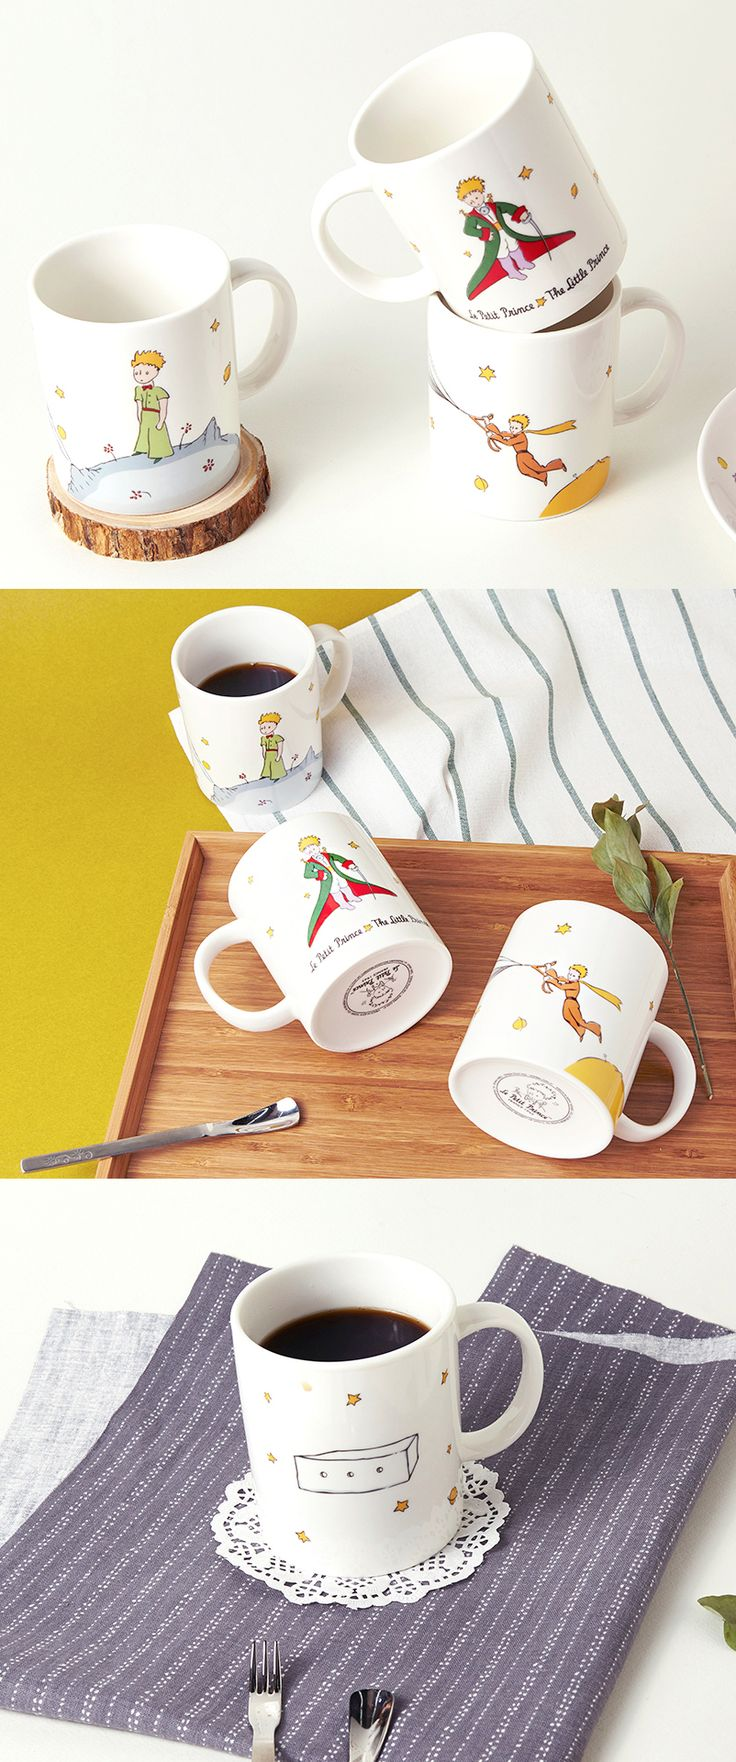 The classic French Novella, The Little Prince, comes alive with beautiful illustrations on this cute mug! Start your mornings off right with tea, coffee, or juice in this beauty.